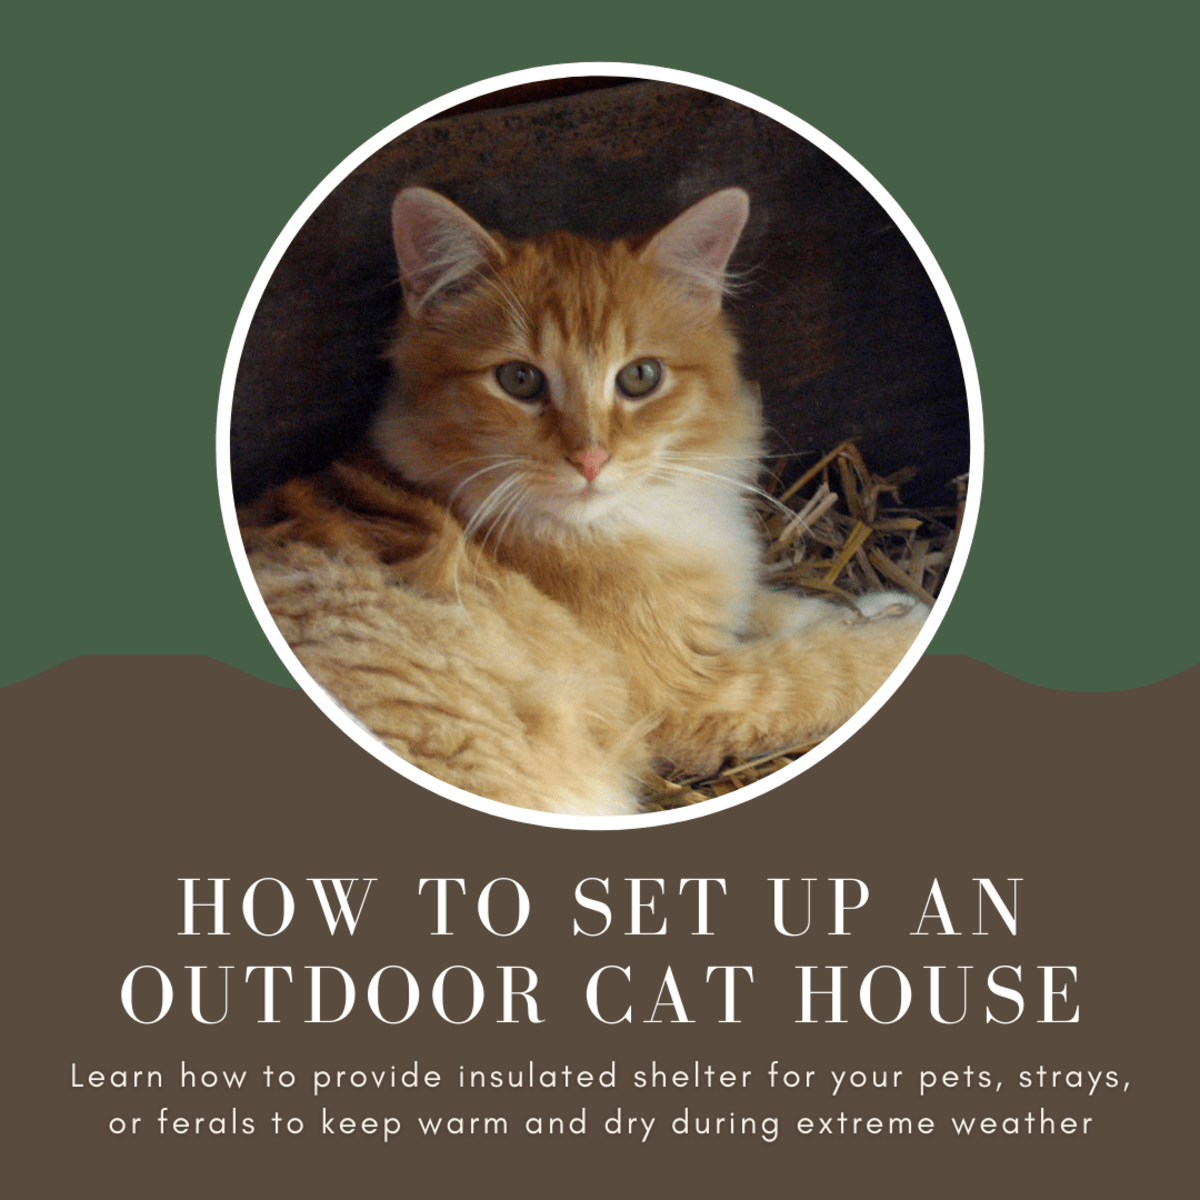 How To Set Up An Outdoor Cat House For Pets Strays And Ferals Pethelpful